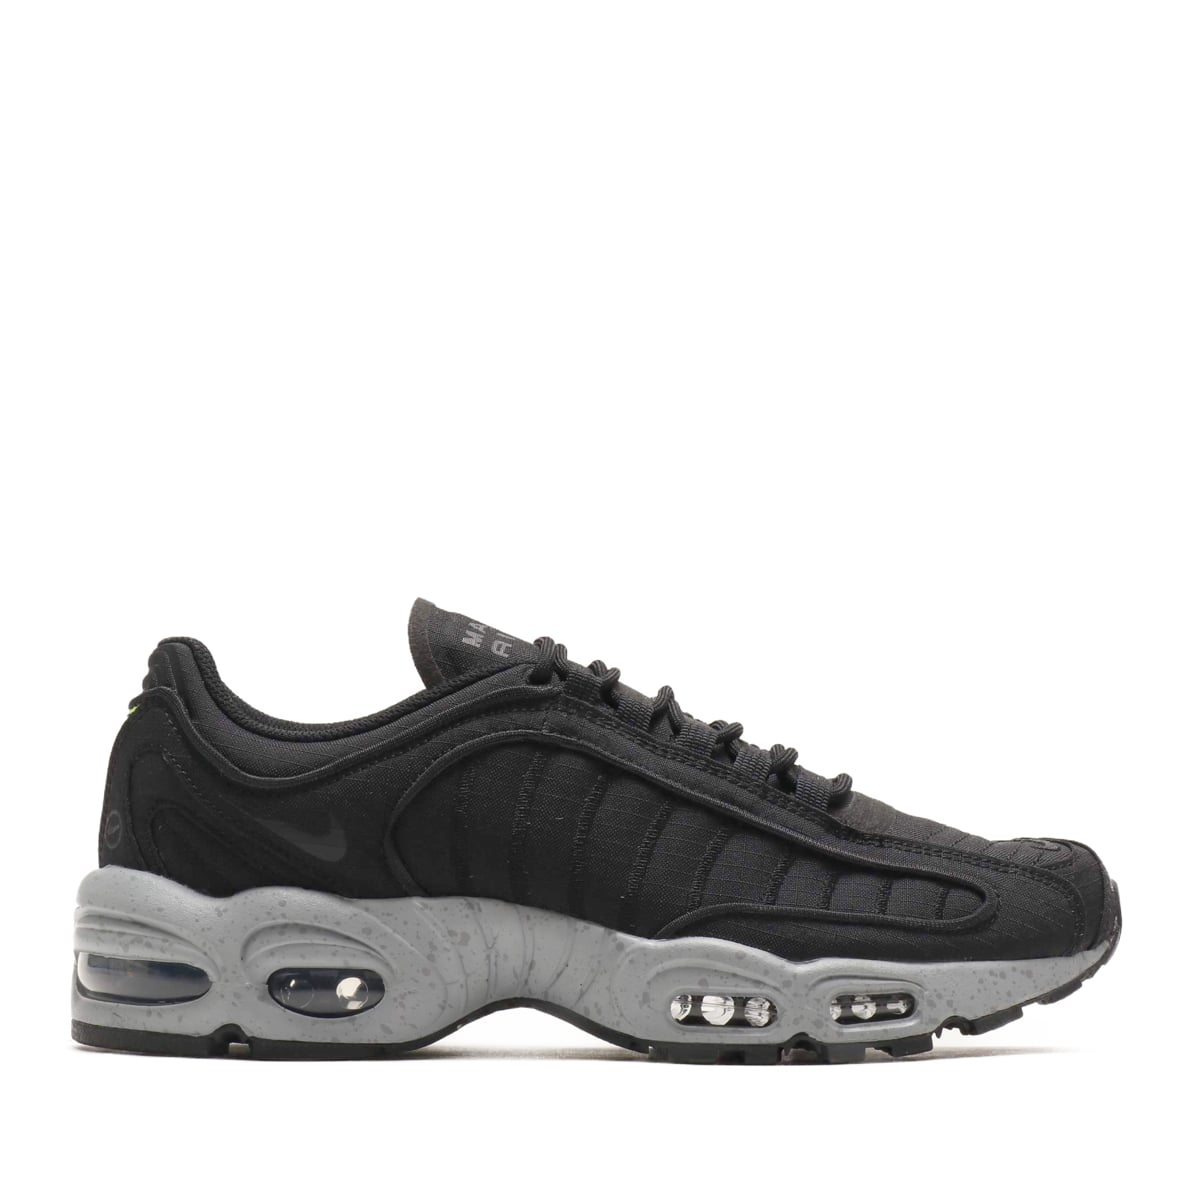 """NIKE AIR MAX TAILWIND IV SP BLACK/WOLF GREY-VOLT 19SU-S""_photo_2"